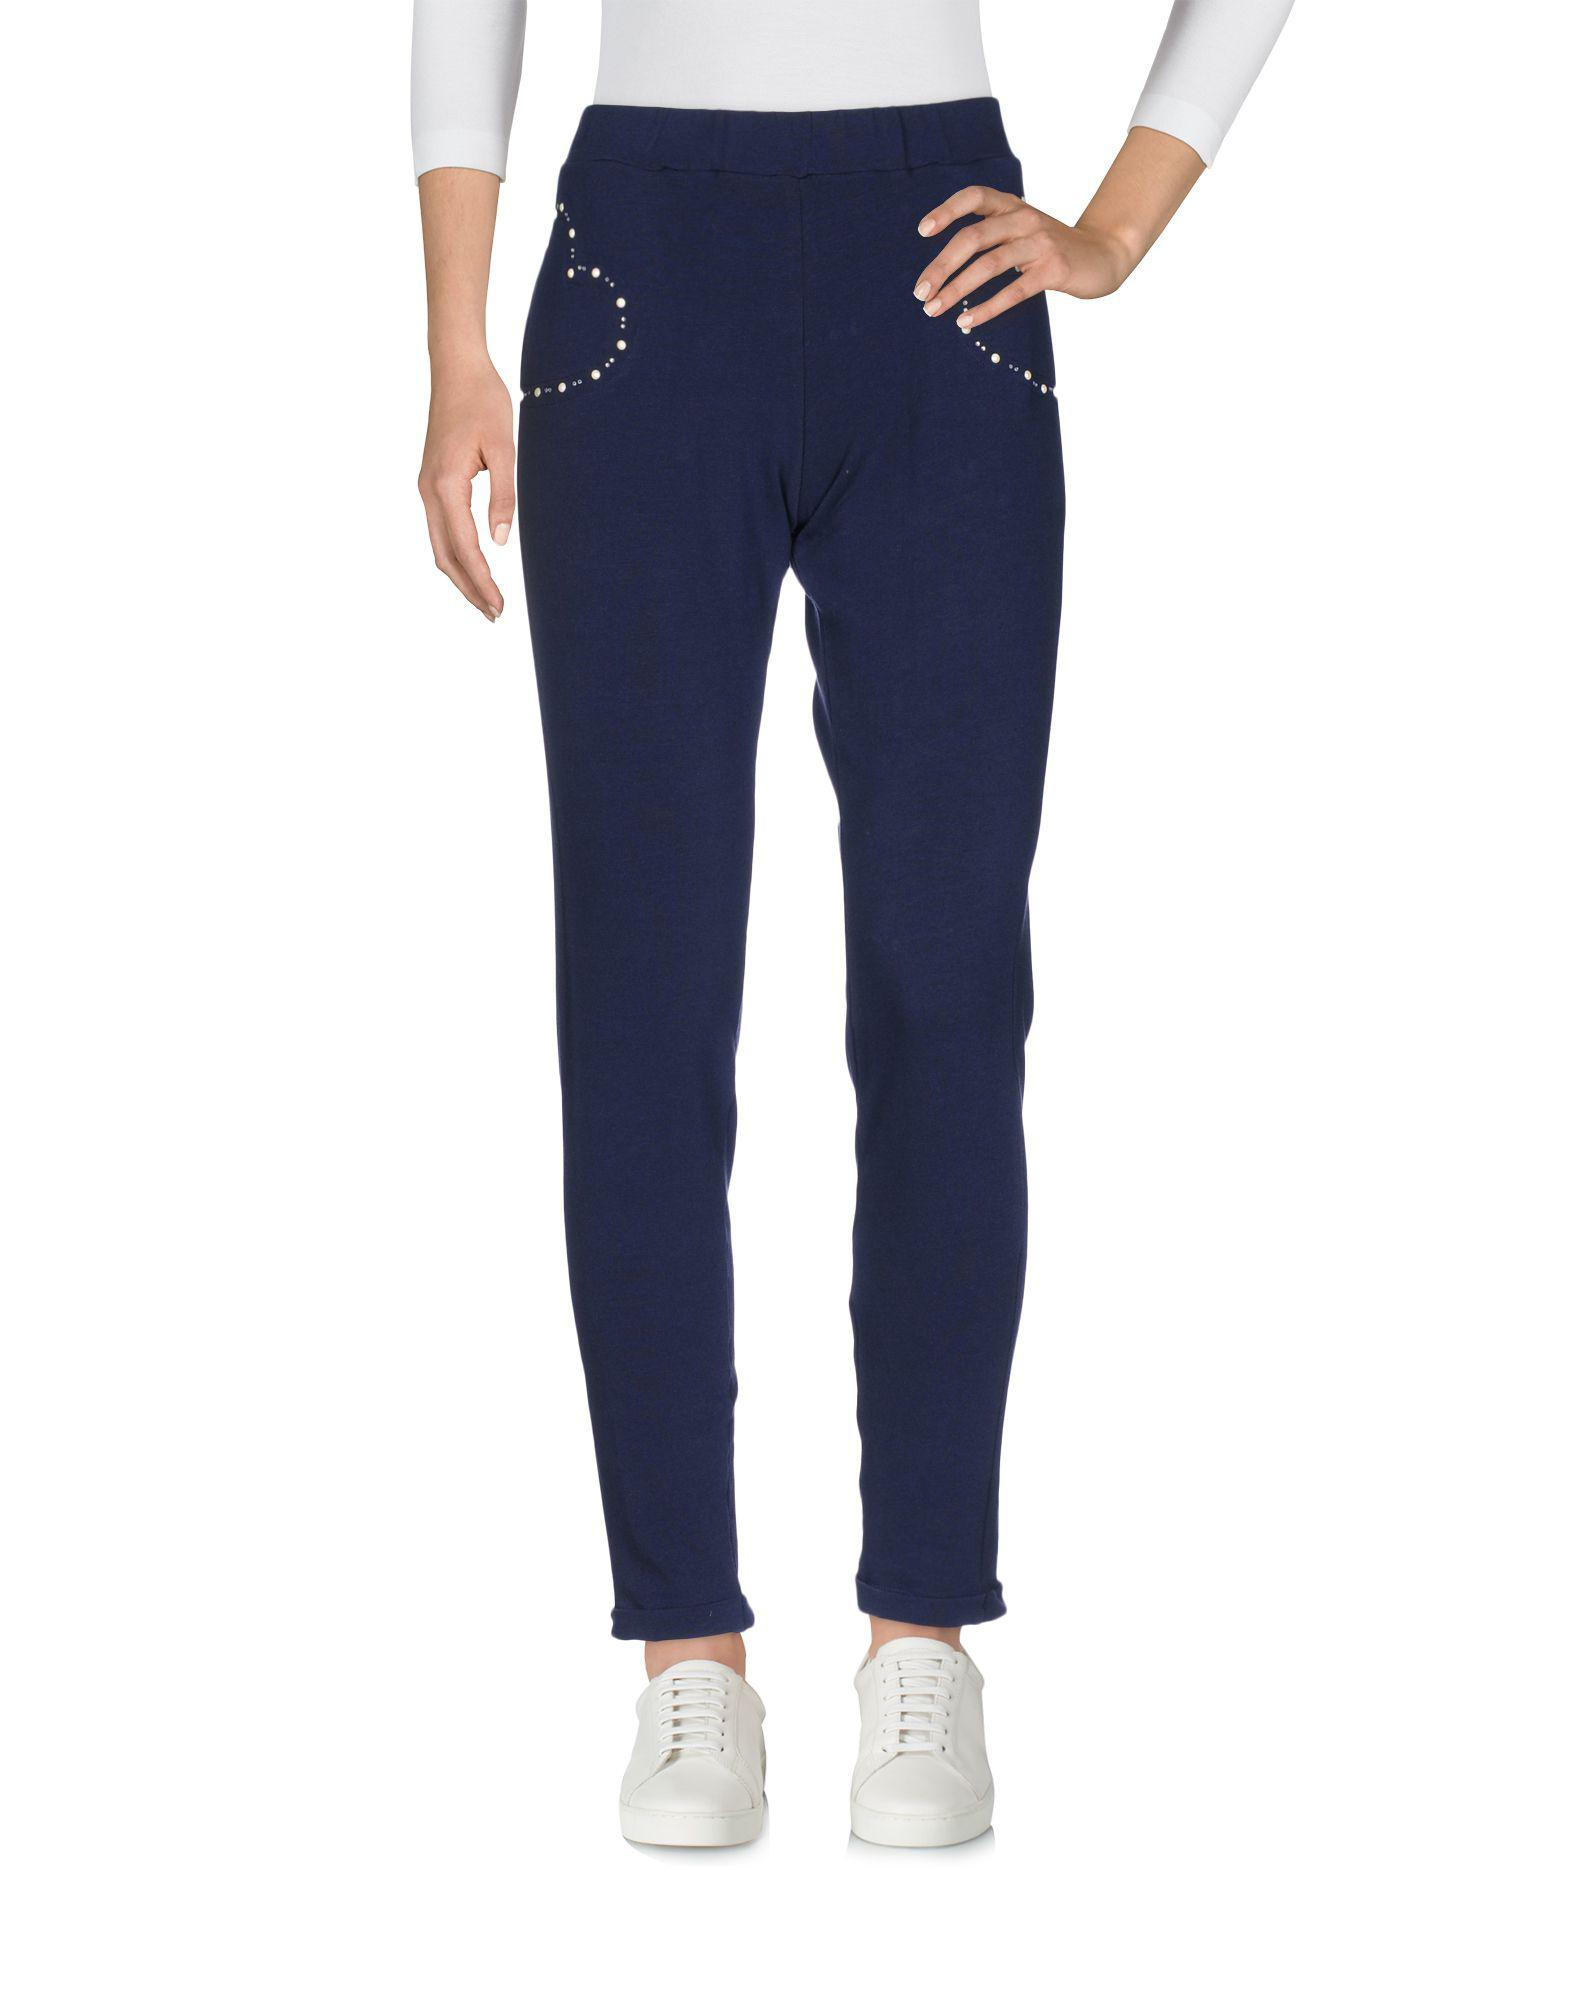 Clearance Pictures TROUSERS - Casual trousers Just For You Free Shipping Official Best Sale Sale Online Cheap Sale Footlocker Finishline Collections Cheap Online U04I59